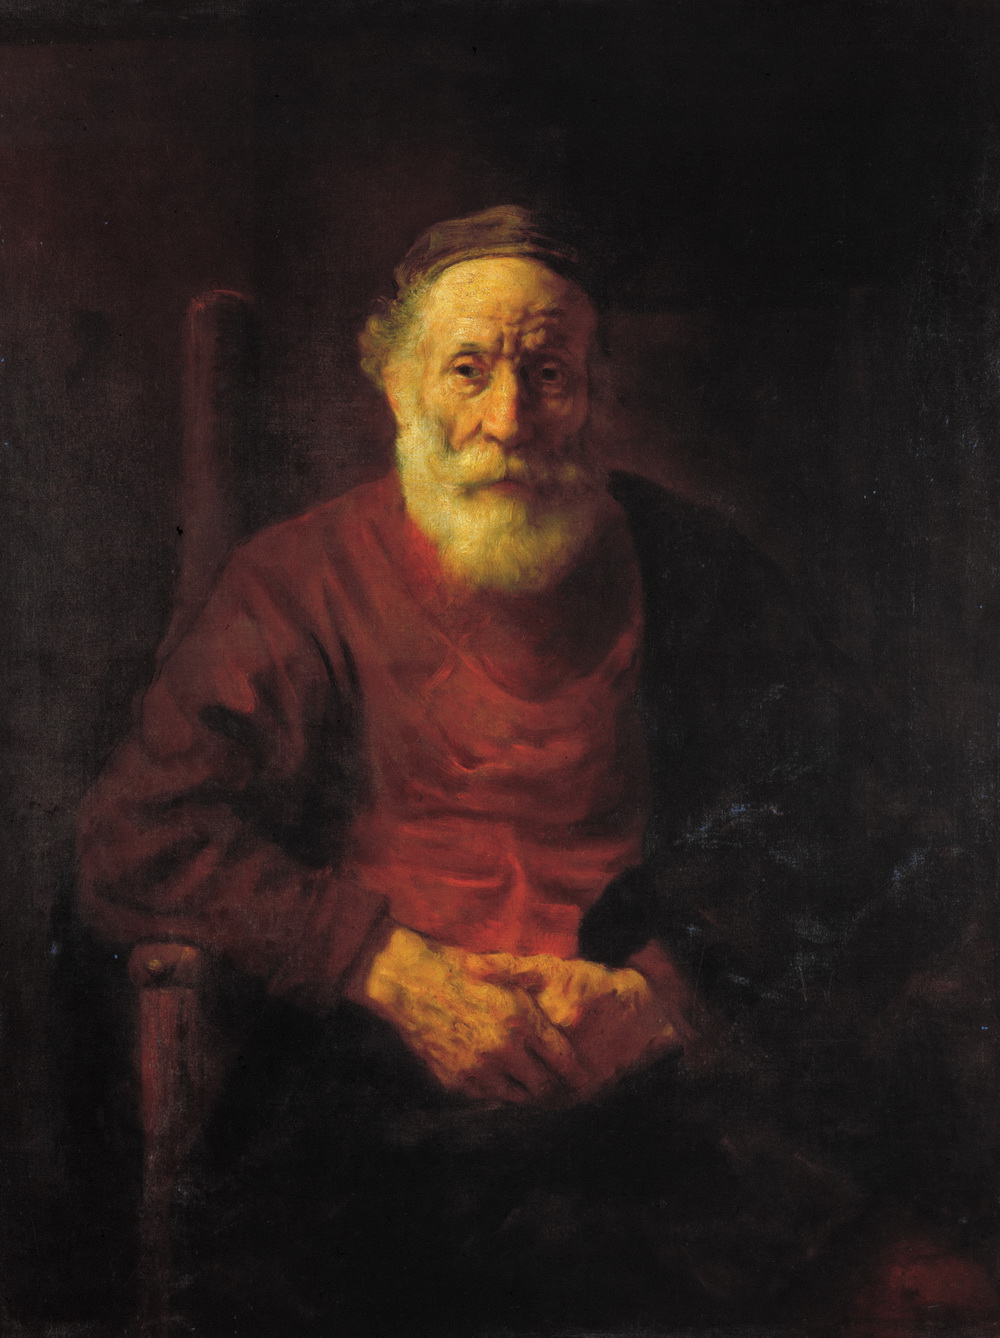 Rembrandt Harmenszoon van Rijn - An Old Man in Red-1000